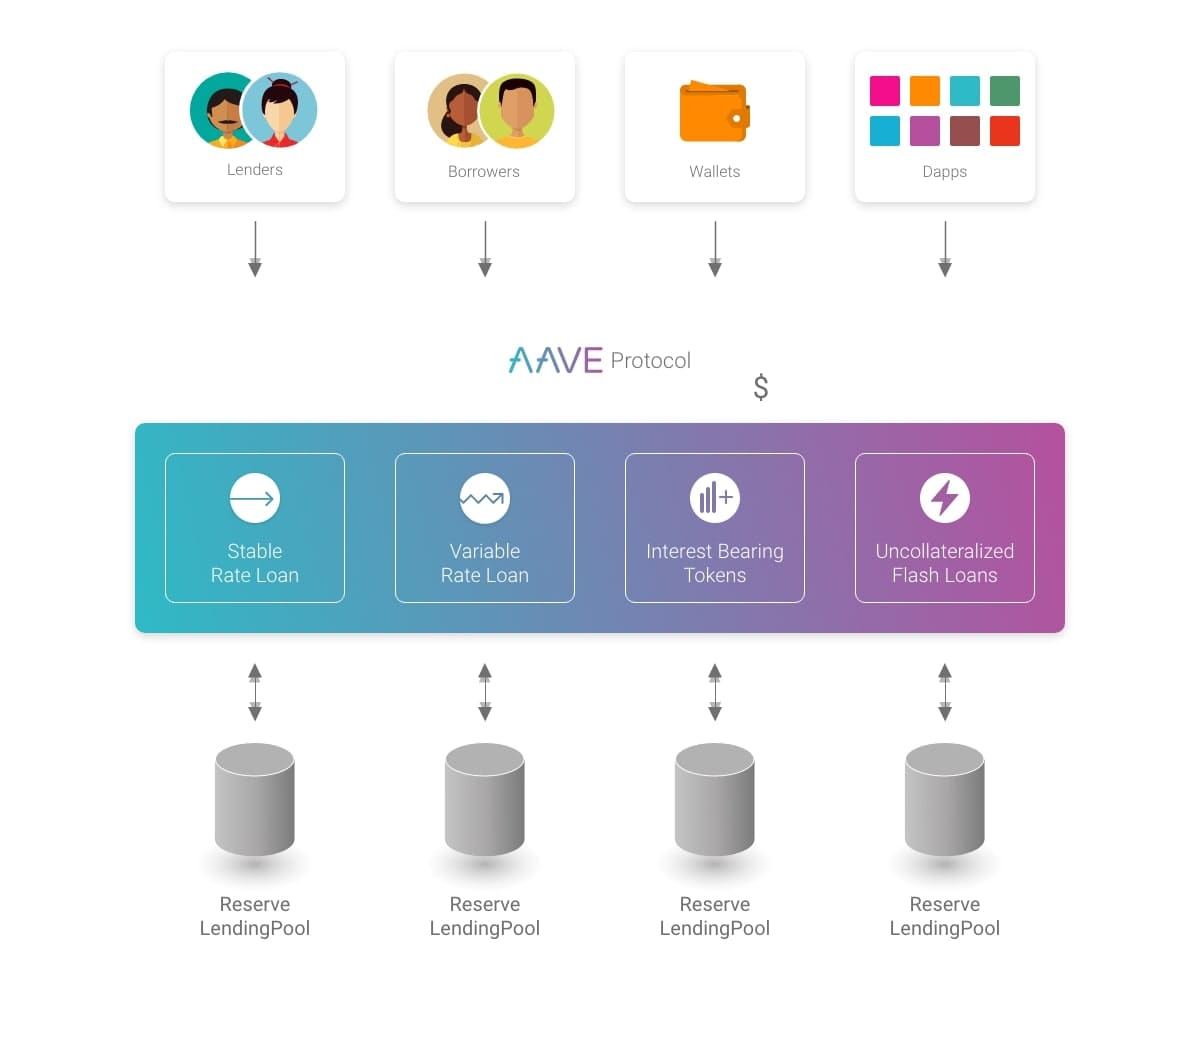 Funktionen des Aave (AAVE) Protokolls